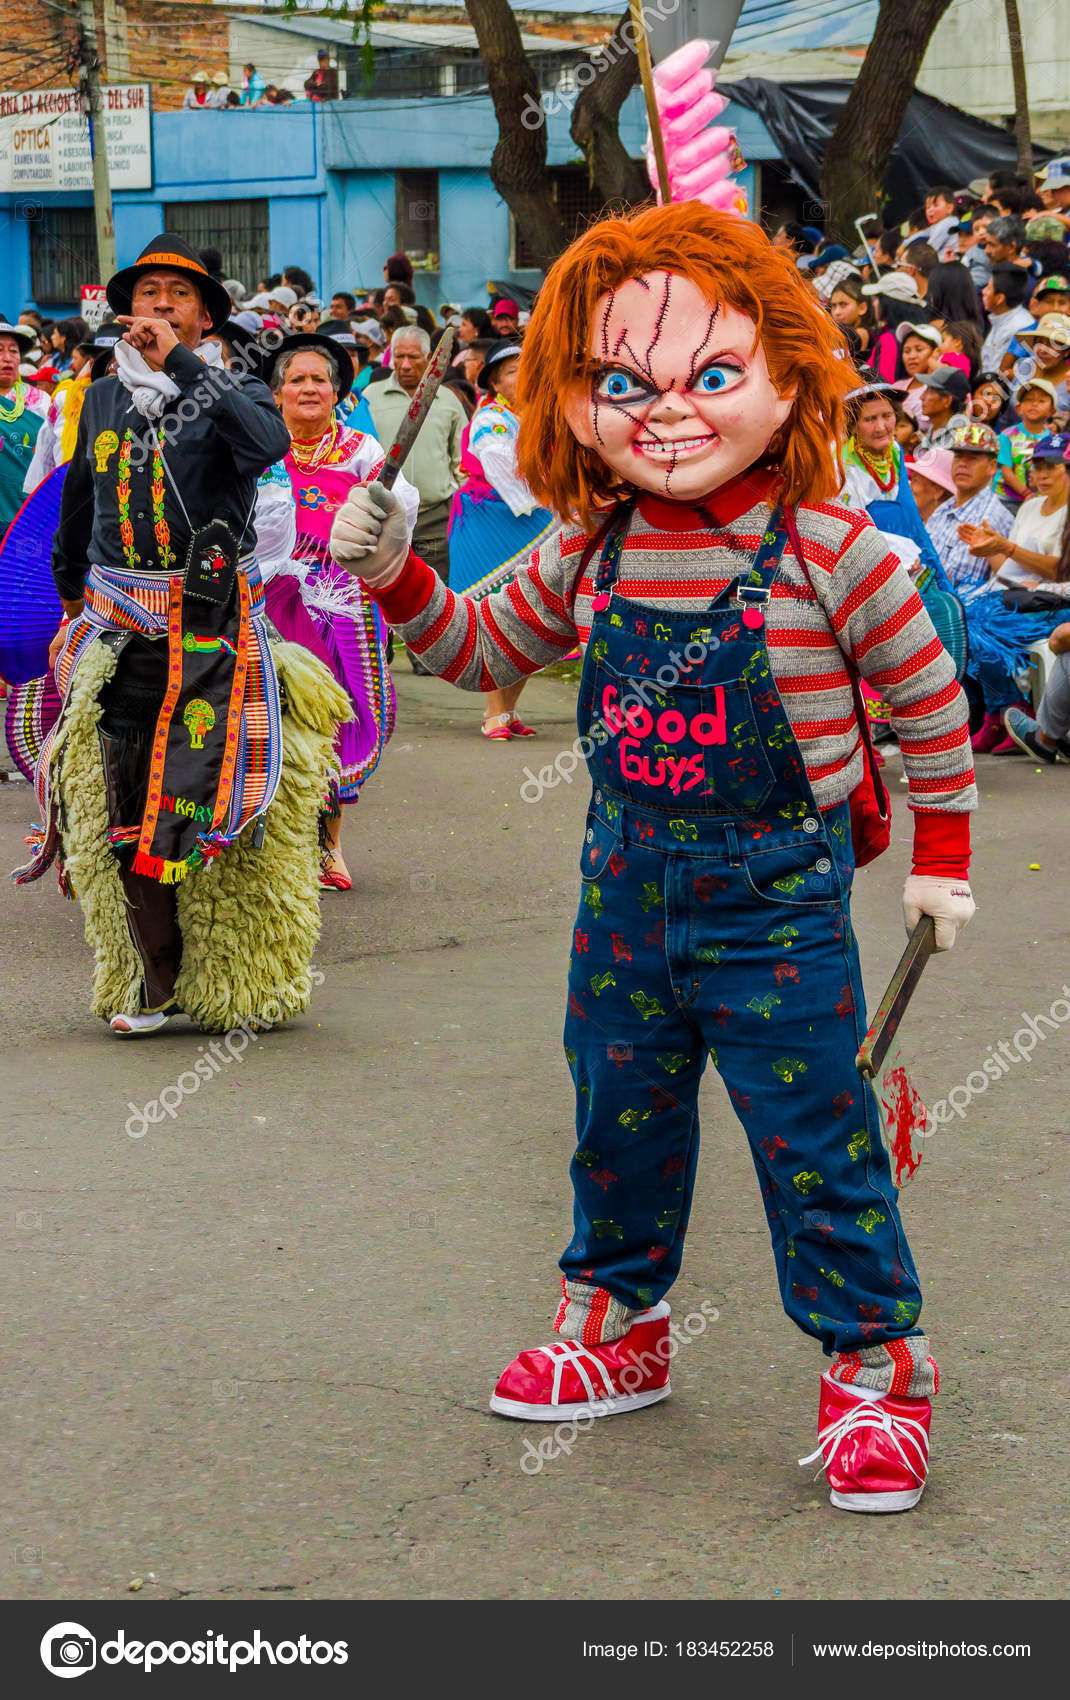 Quito Ecuador - January 31 2018 Unidentified man wearing a Chucky costume holding  sc 1 st  Depositphotos & Quito Ecuador - January 31 2018: Unidentified man wearing a Chucky ...